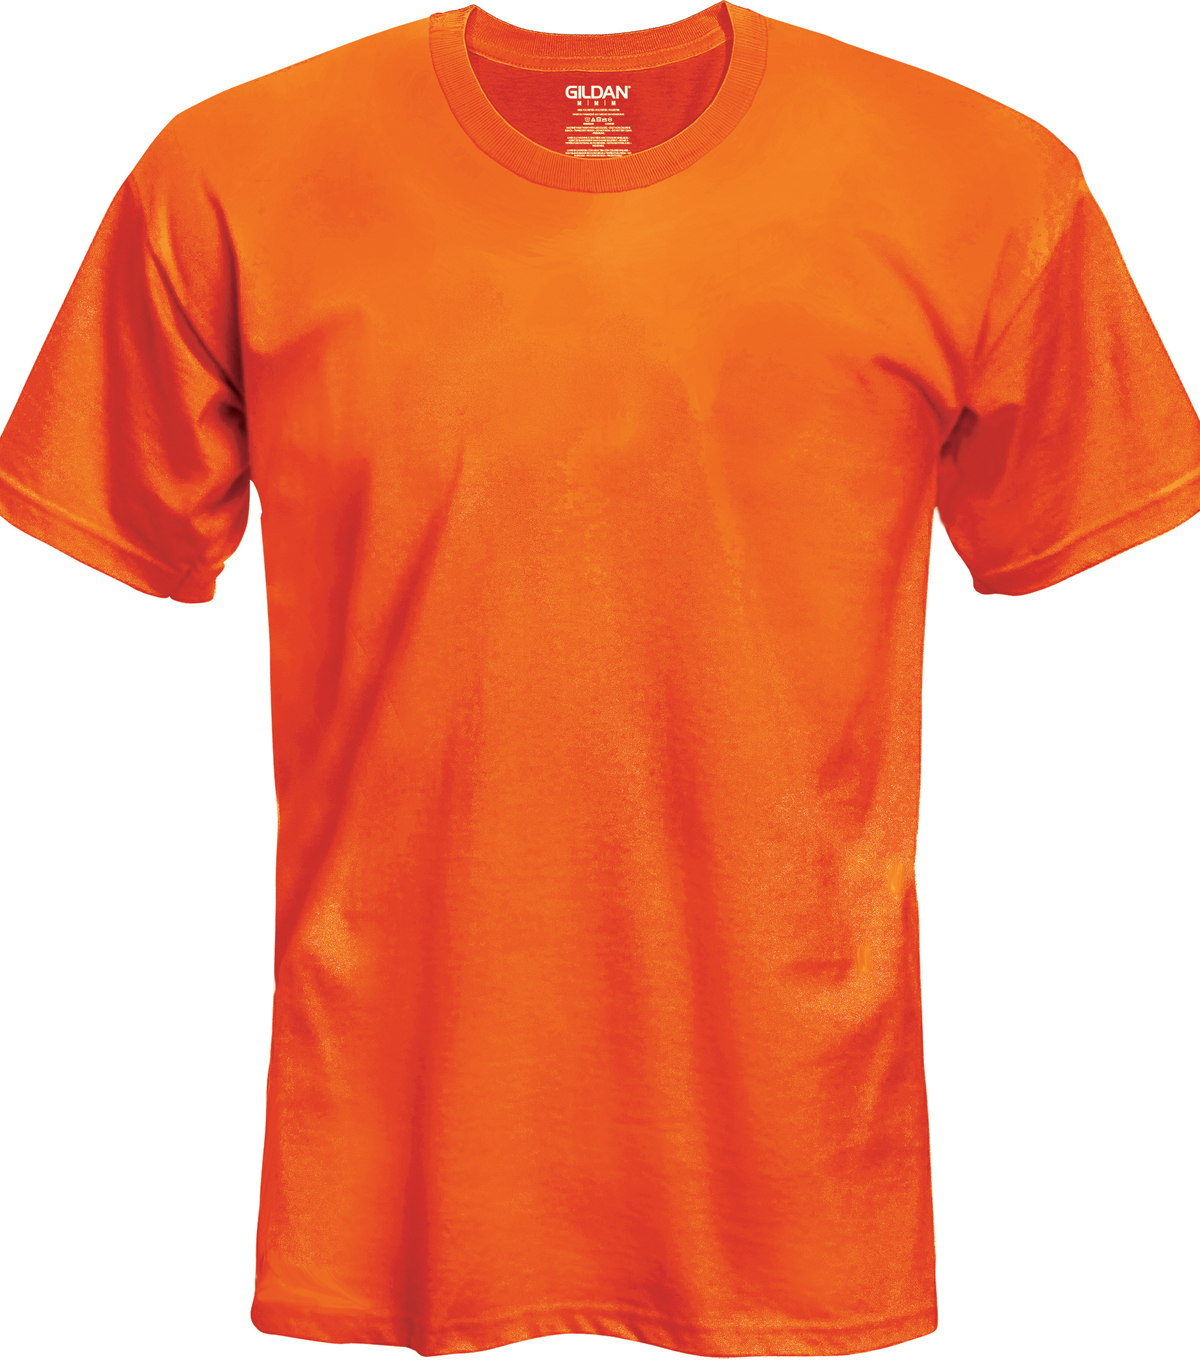 Gildan Adult T-shirt Medium